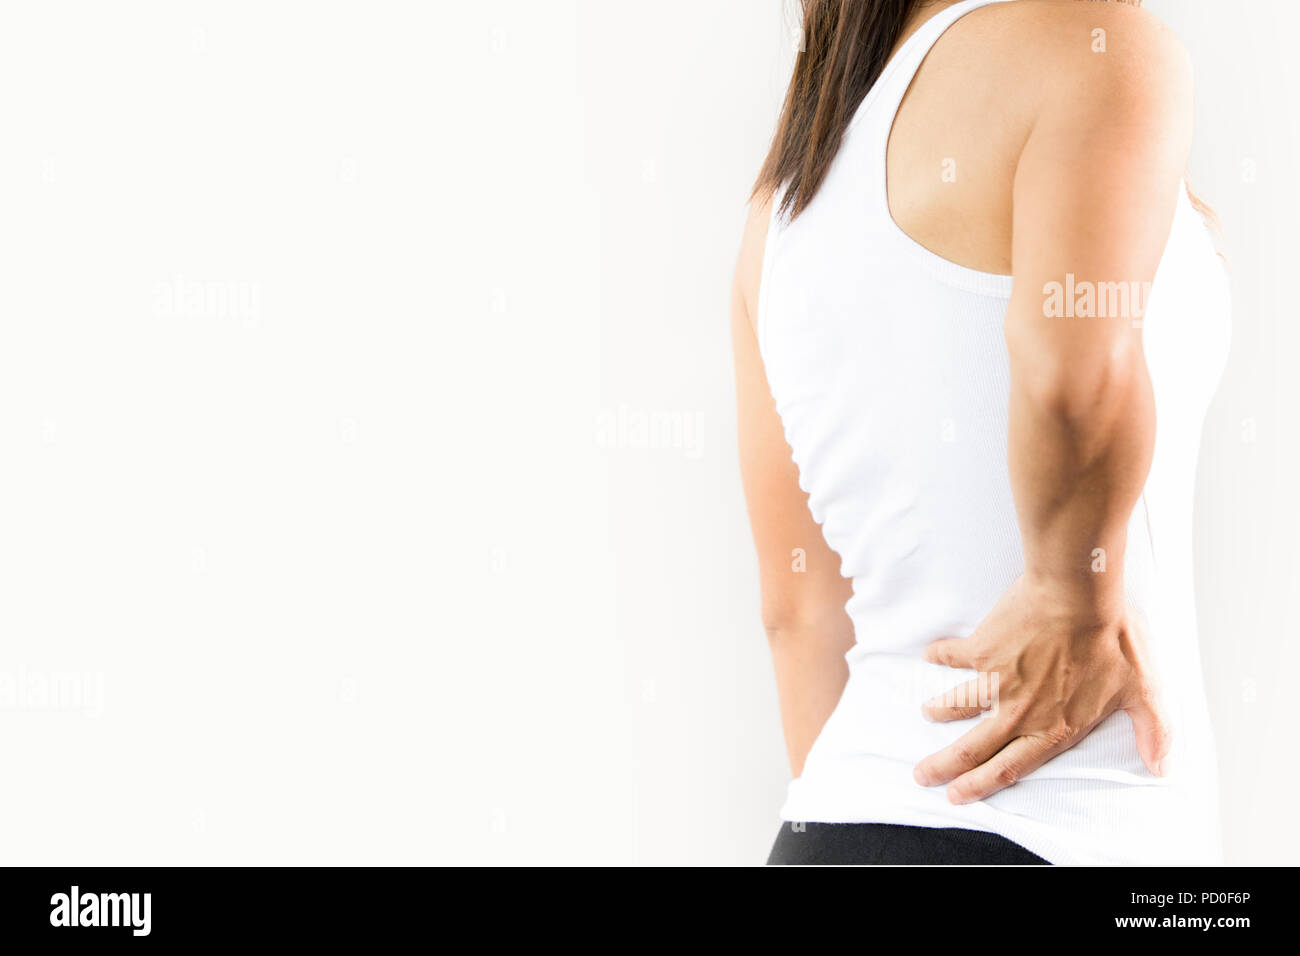 woman palpation at lower back, low back pain in young woman Stock Photo